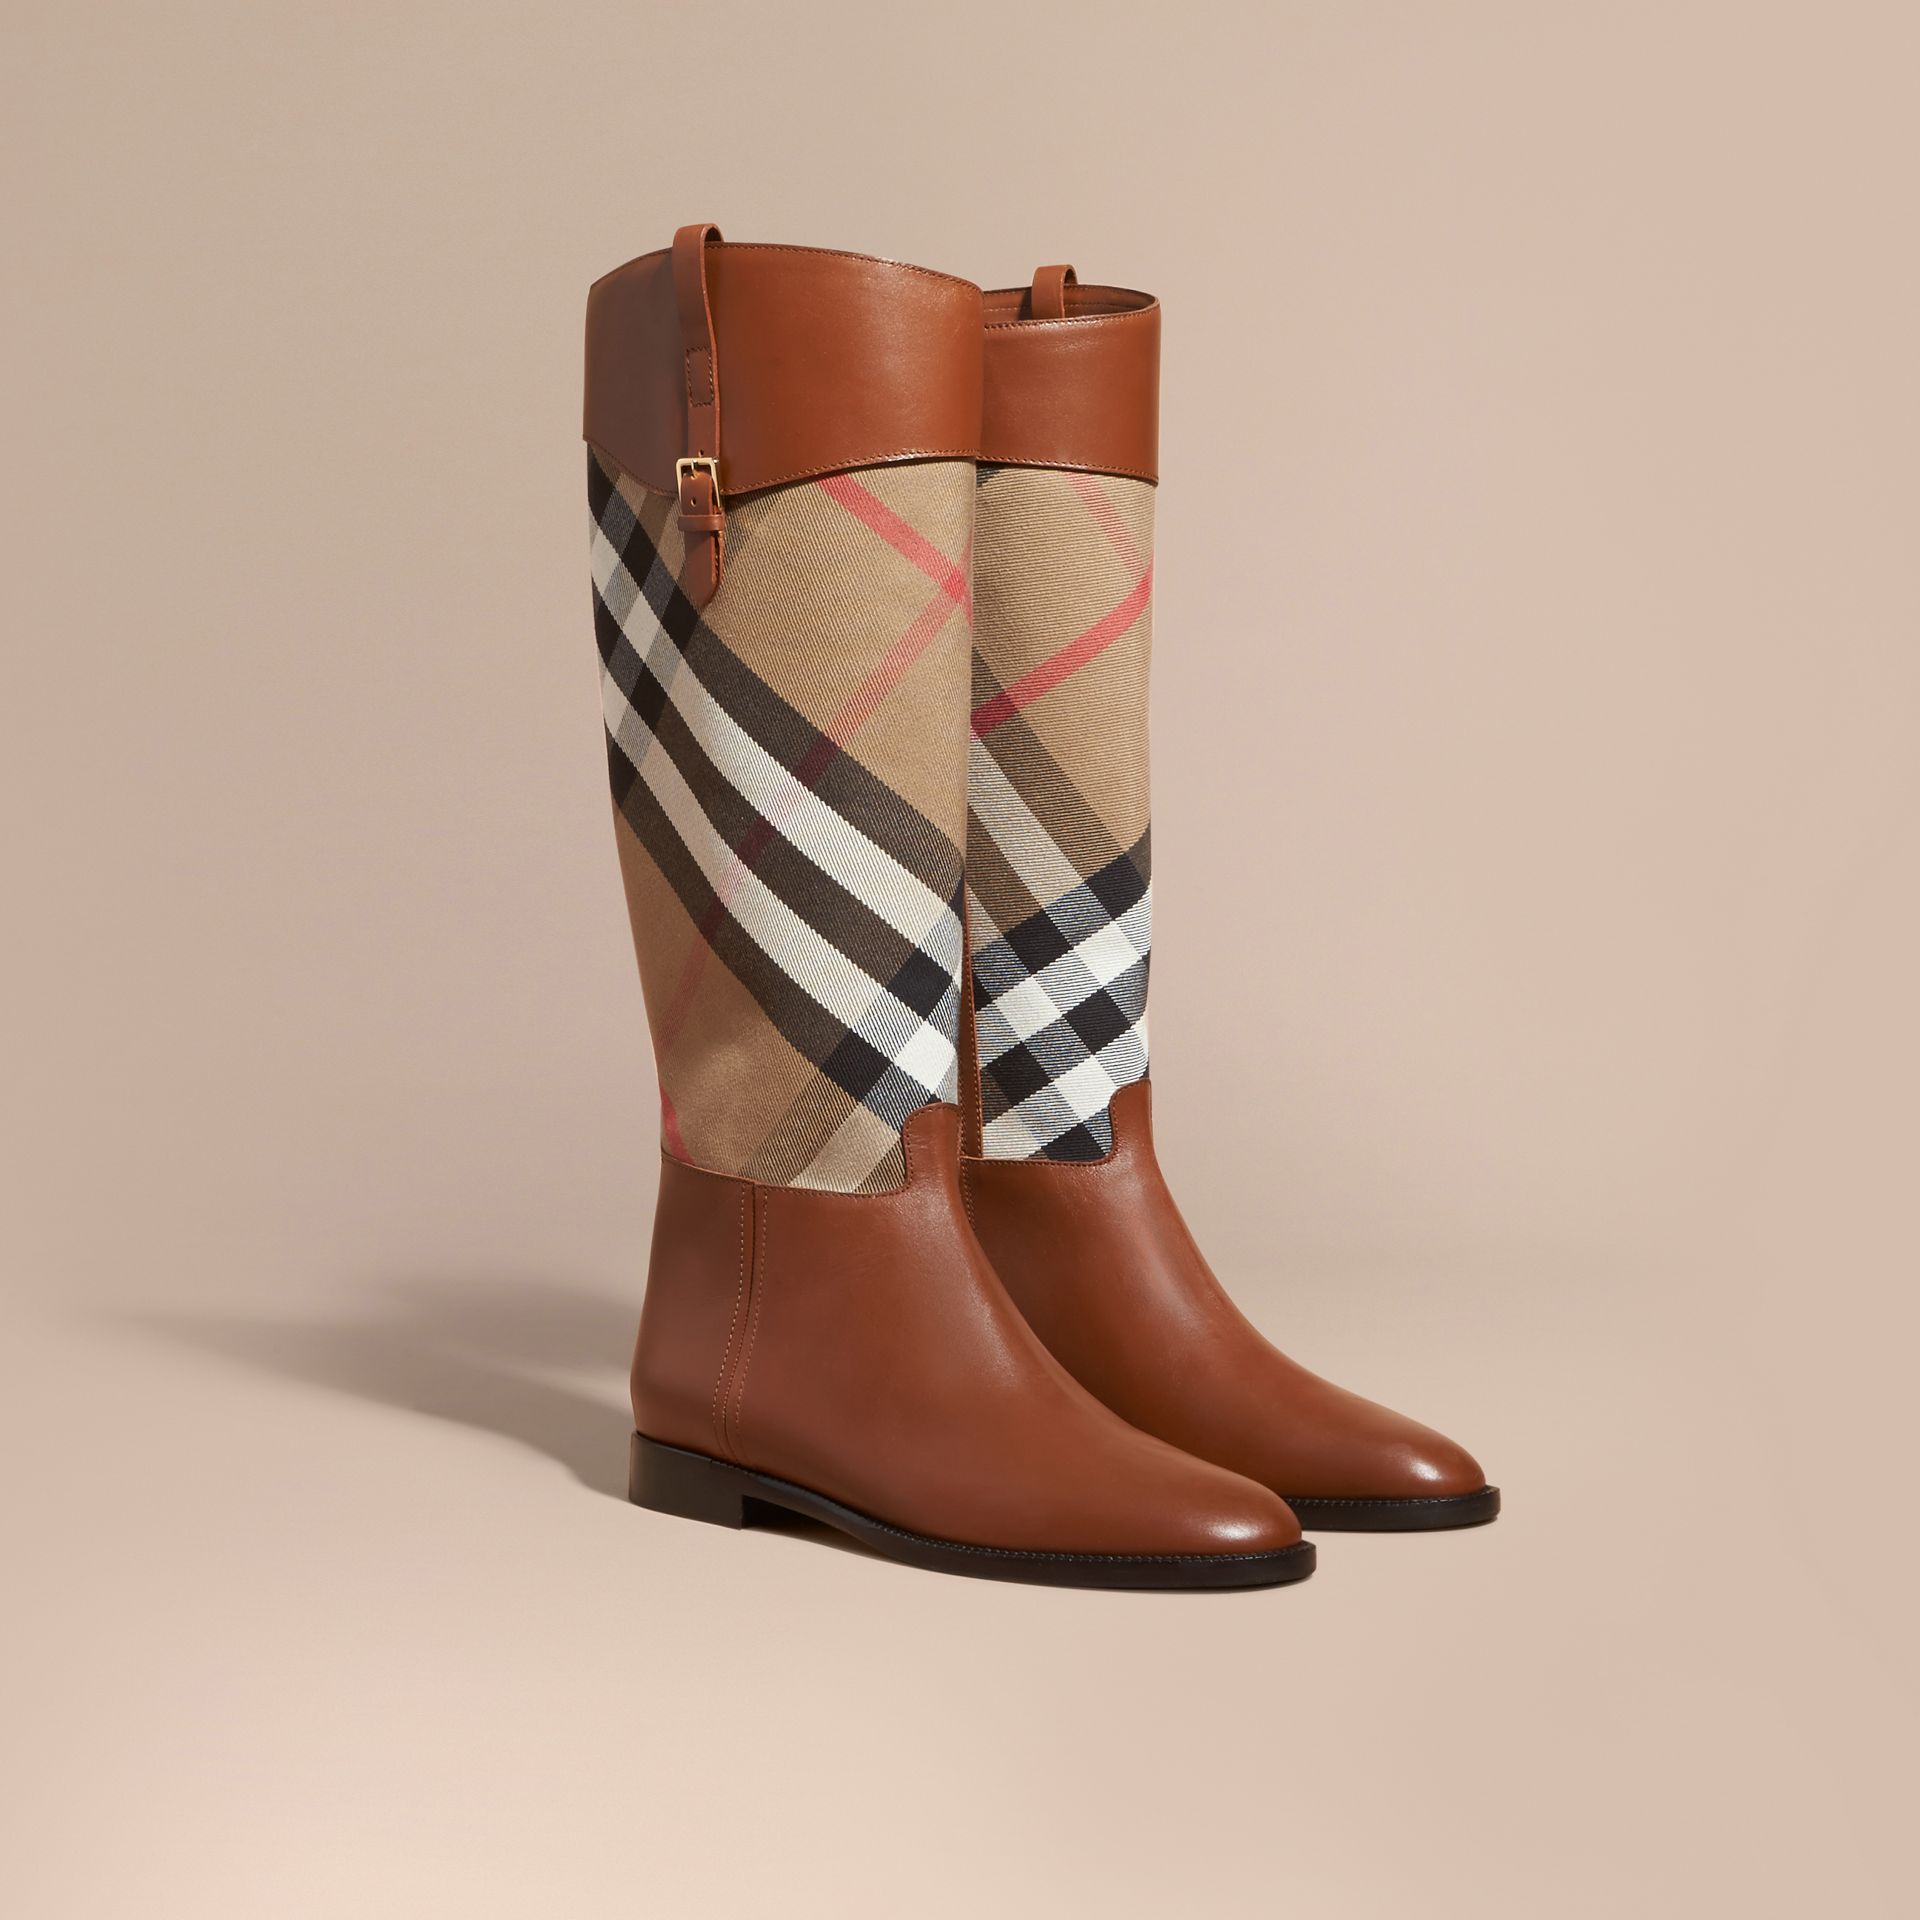 House Check and Leather Riding Boots Chestnut - gallery image 1